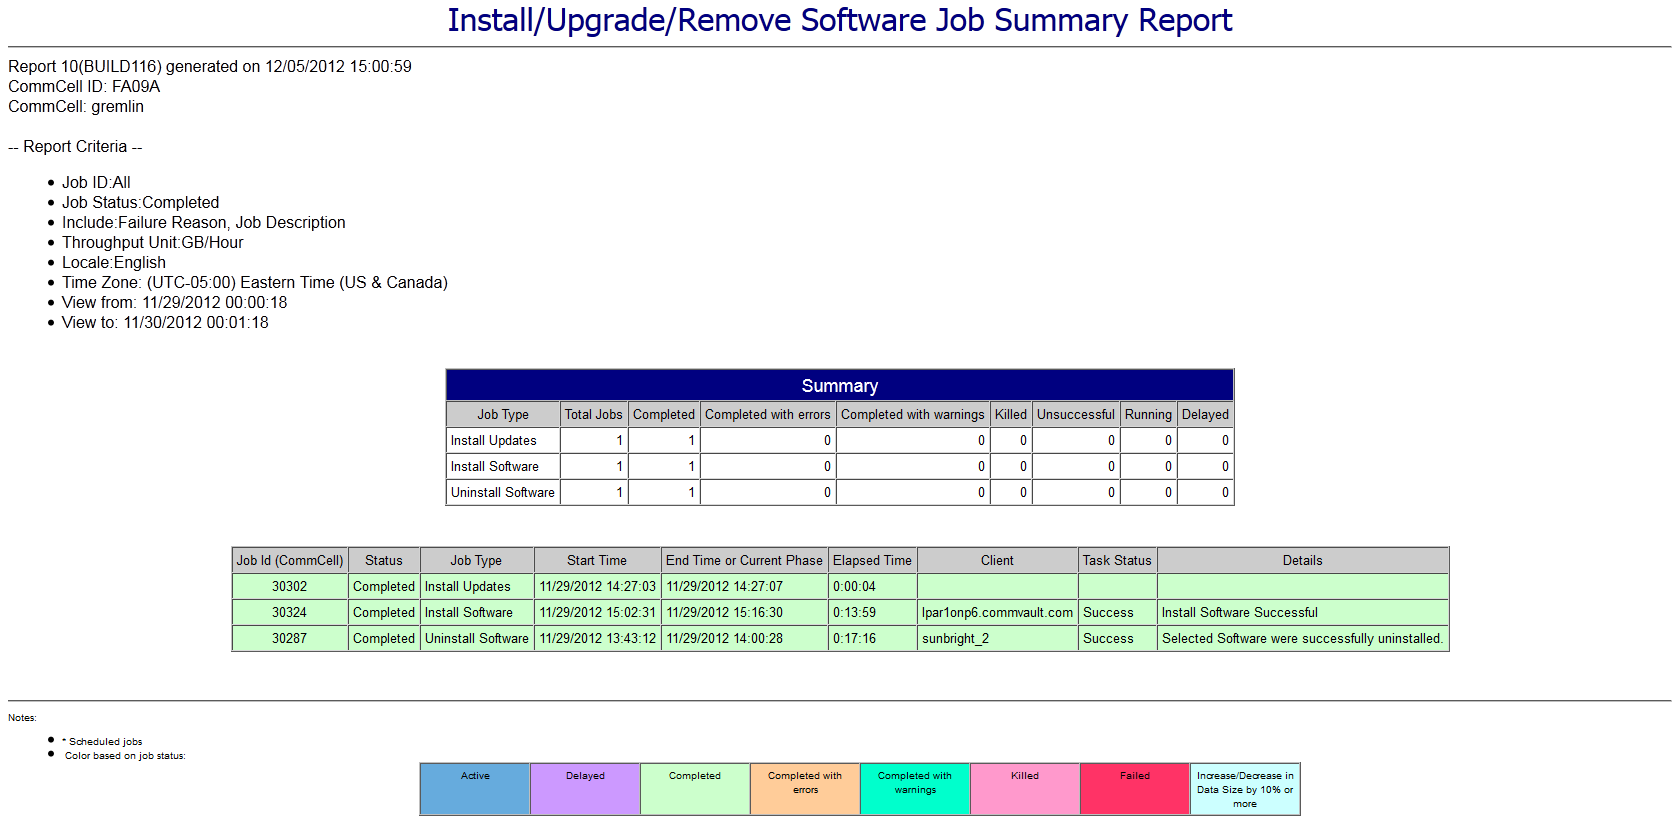 Example of the Install/Upgrade/Remove/Repair Software Job